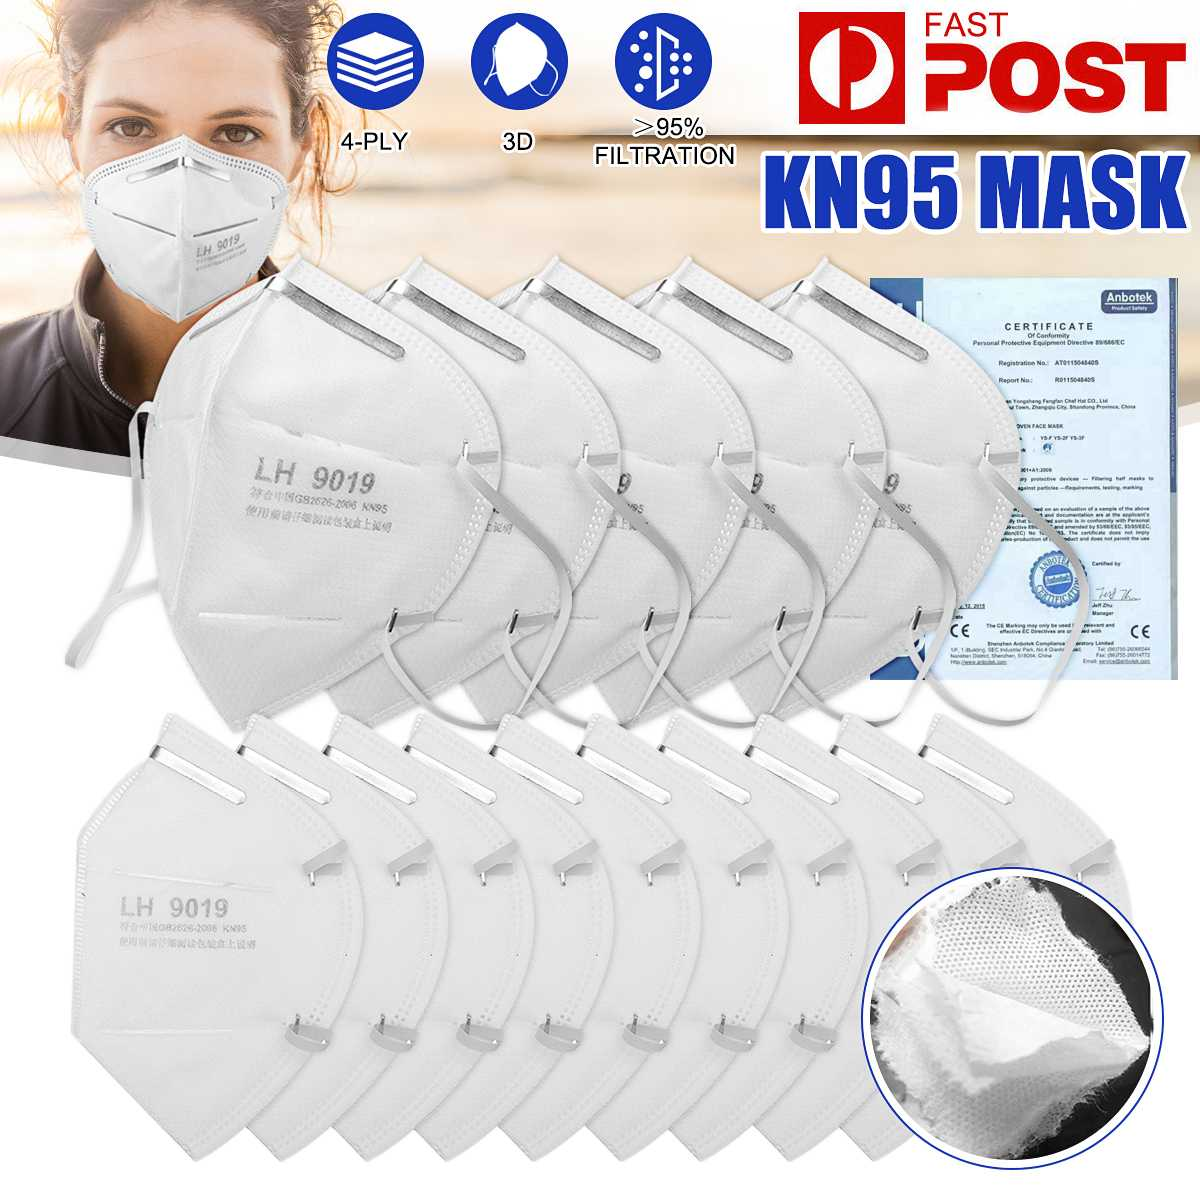 100PCS KN95 Mask Mouth N95  Mask FFP2 Face Mask 95% Filtraion Cotton Mouth Masks Anti-Dust 4-layer Protective Cover Mask